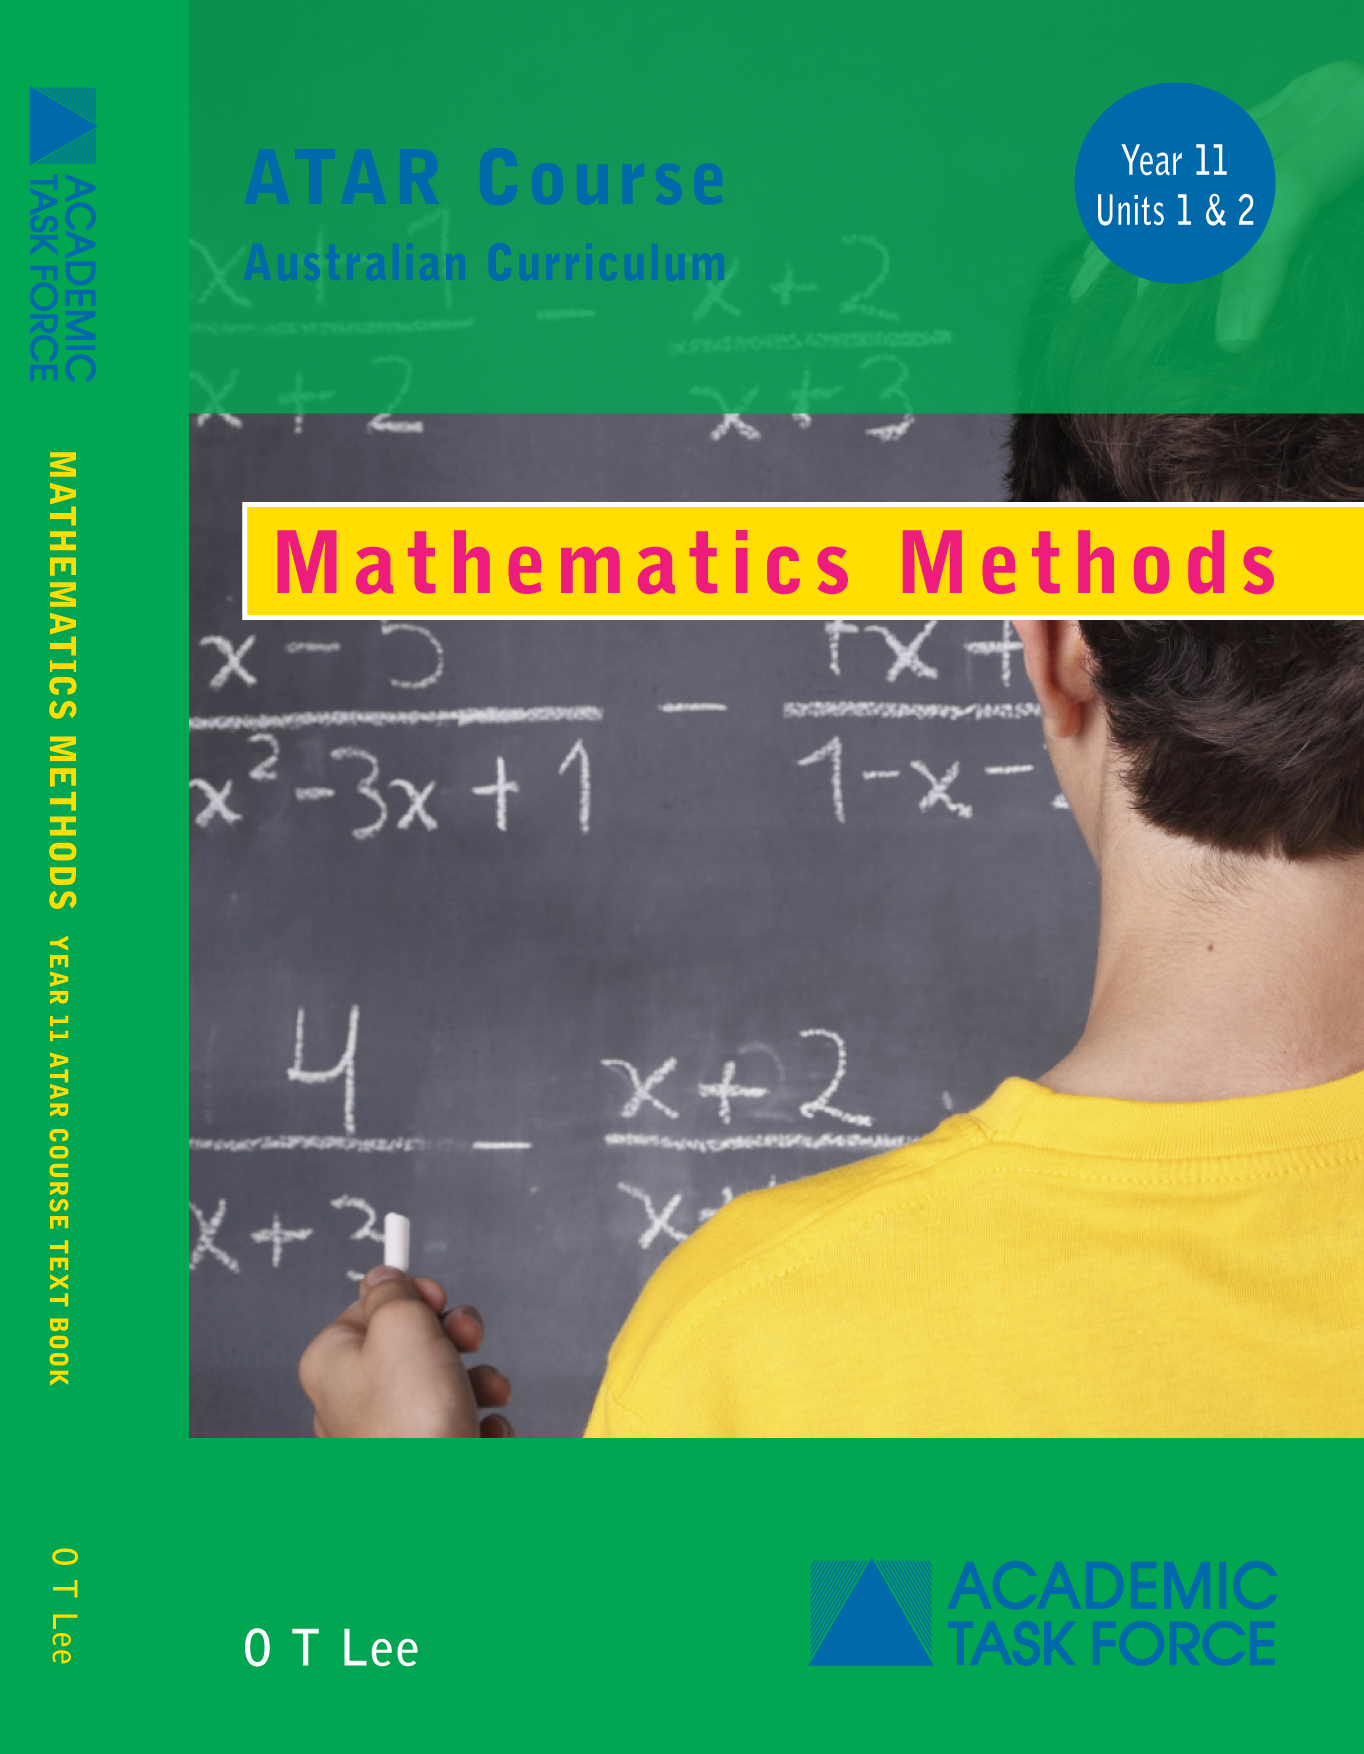 methods maths coursework Maths methods maths methods classes are specifically targeted to making sure that students can apply mathematical logic and reasoning to a multitude of scenarios.